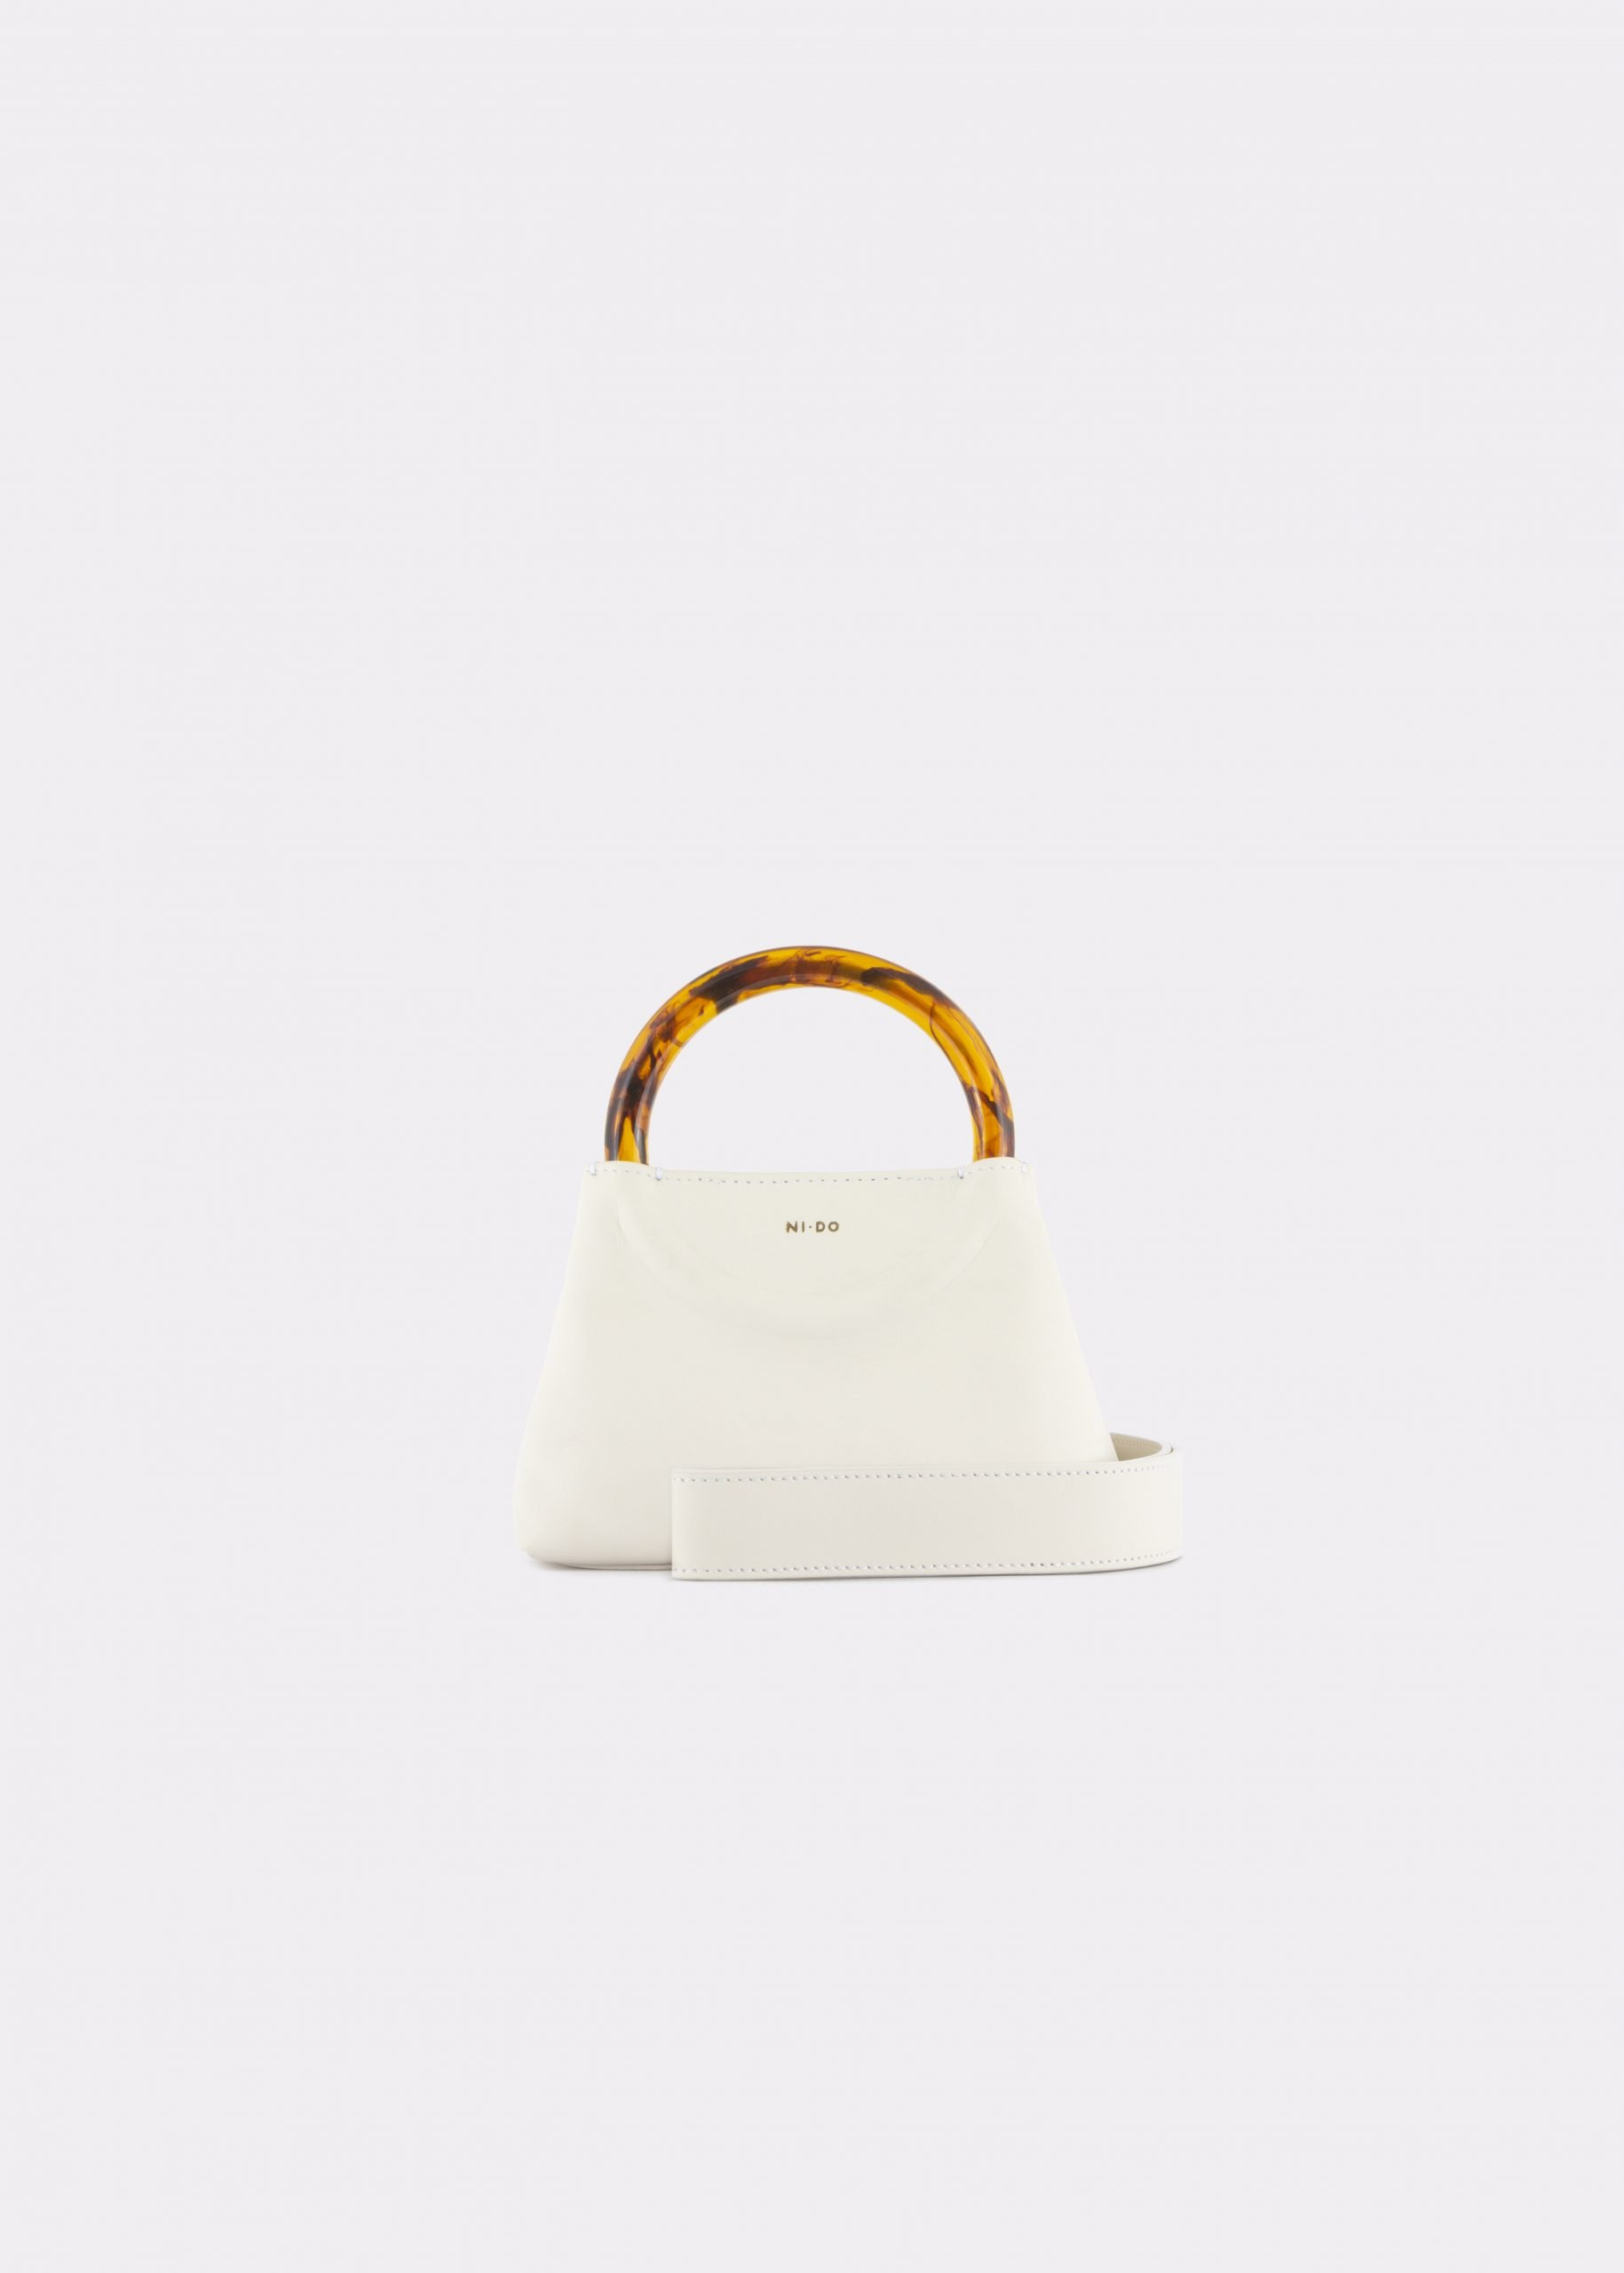 NIDO Bolla Micro bag soy milk leather Amber_shoulder strap view